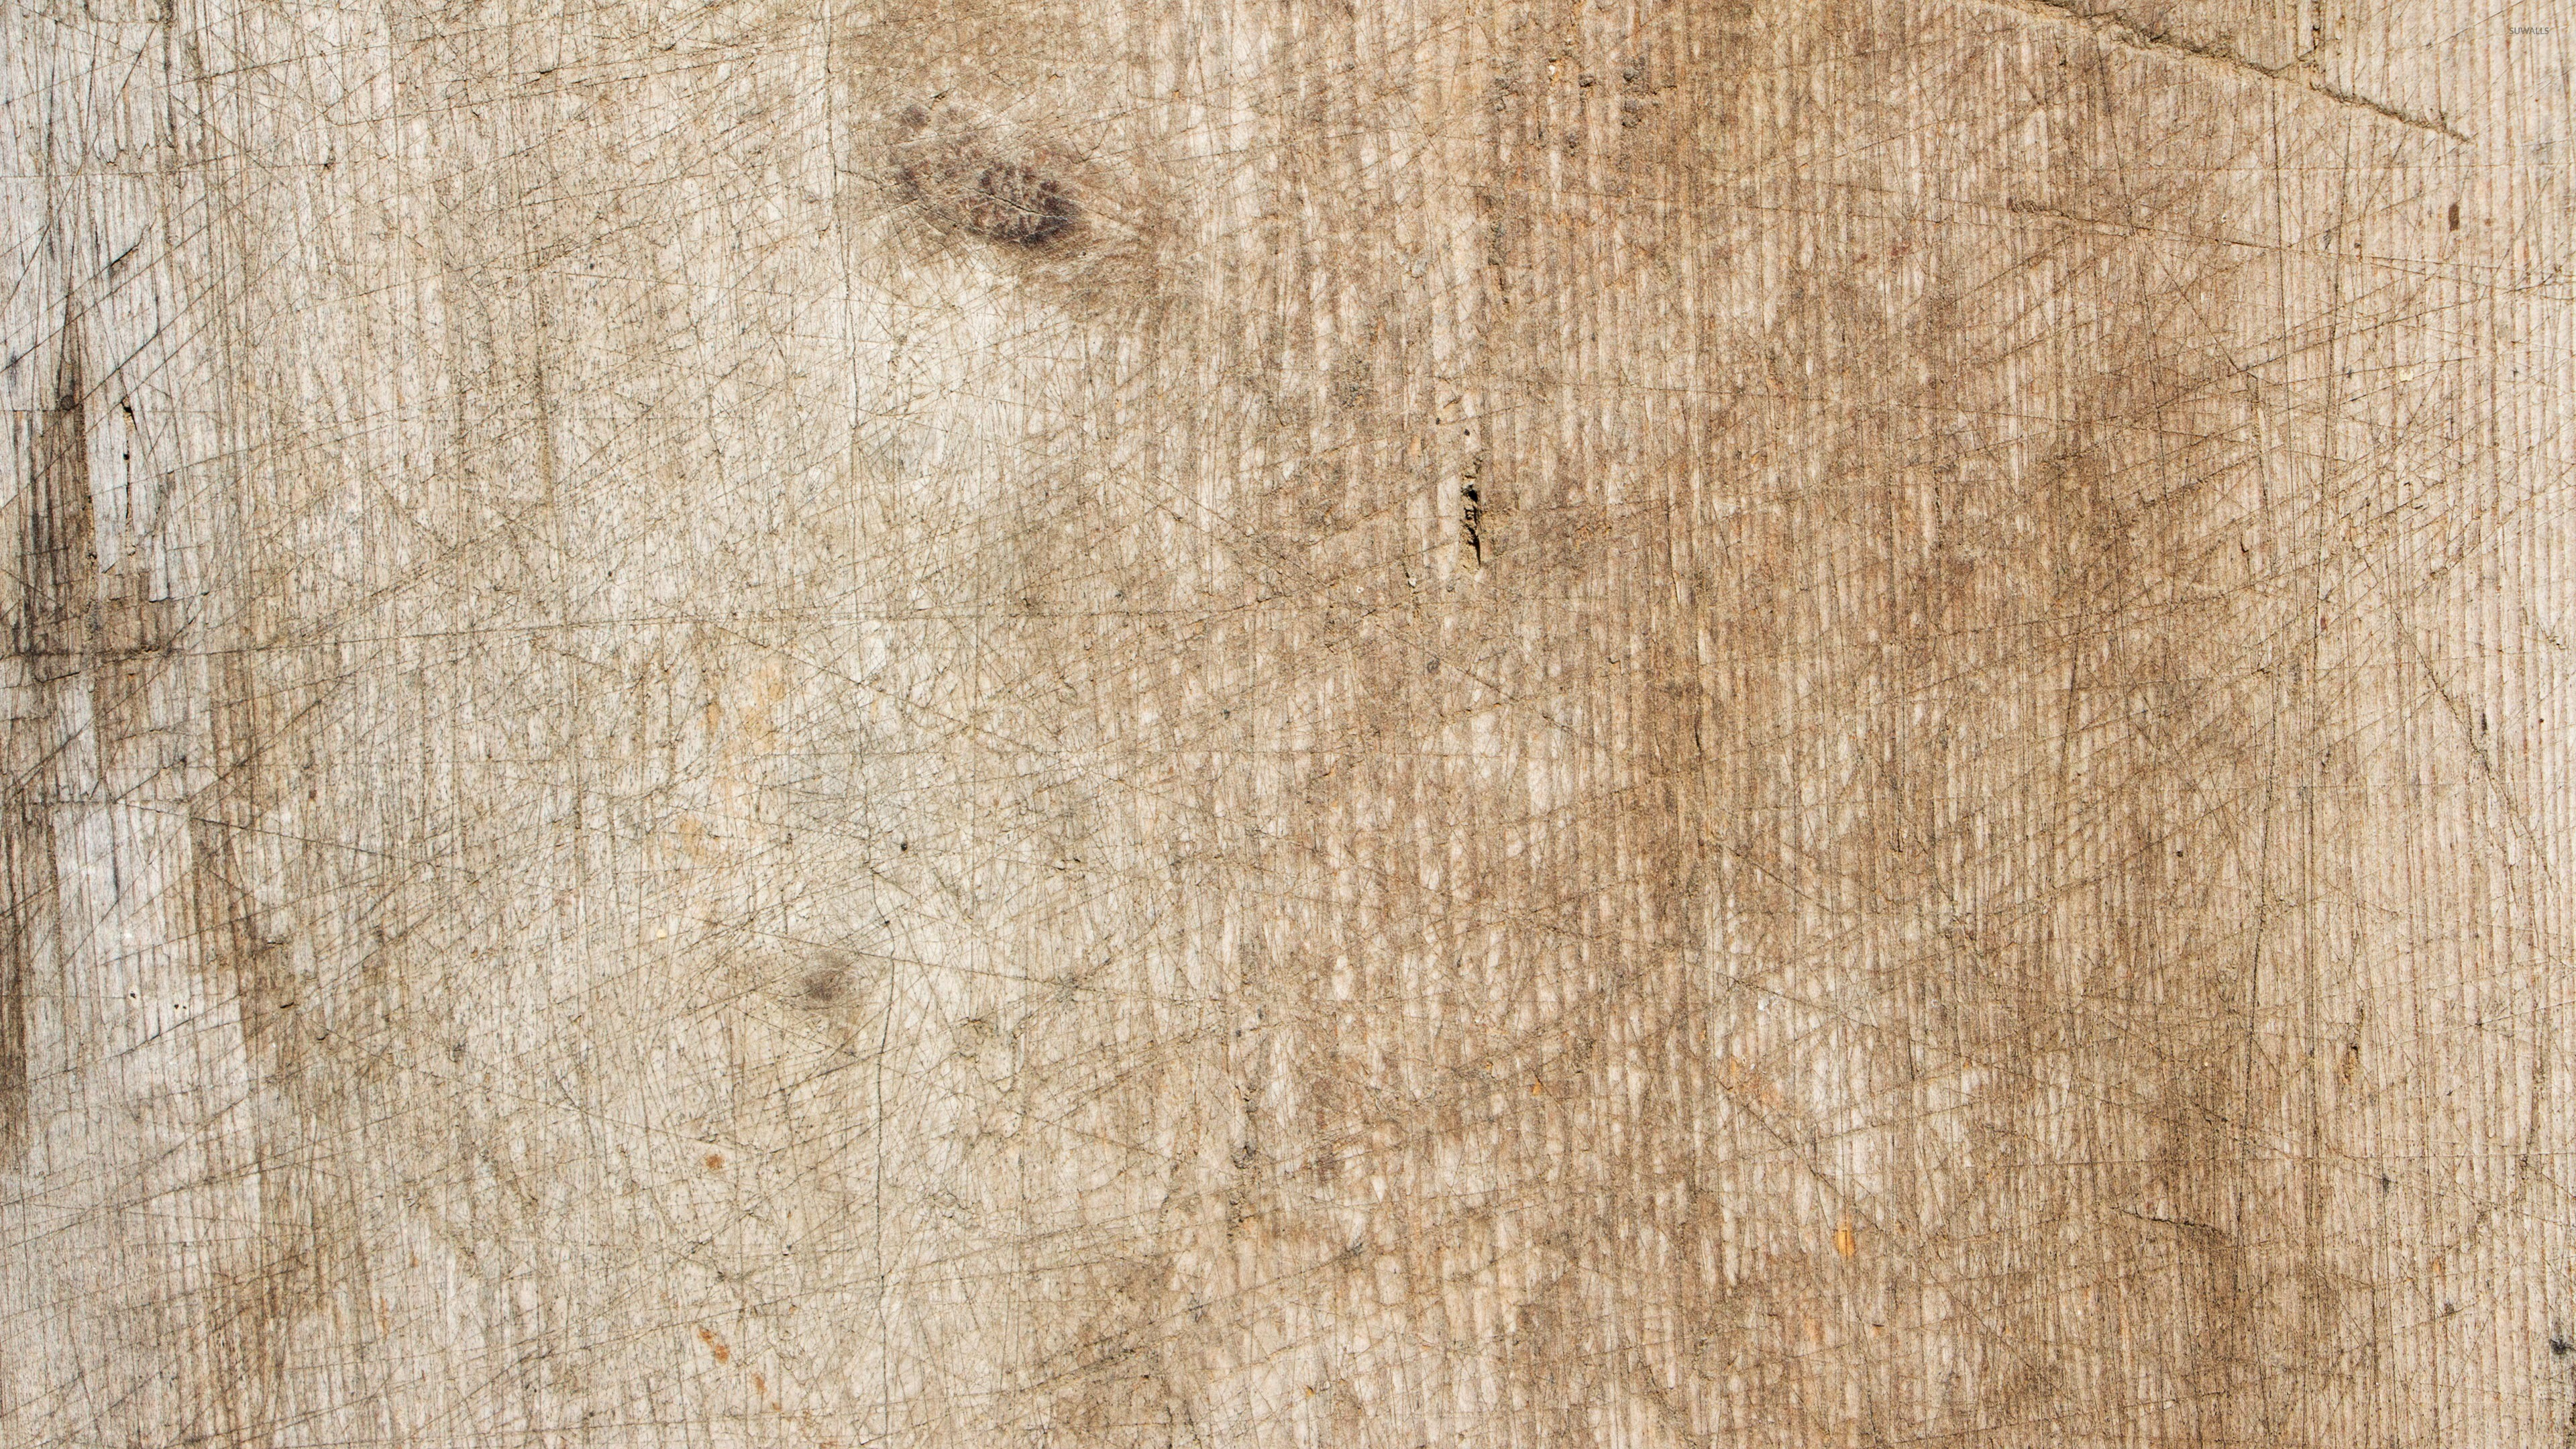 3840x2160 Scratches on old wood wallpaper